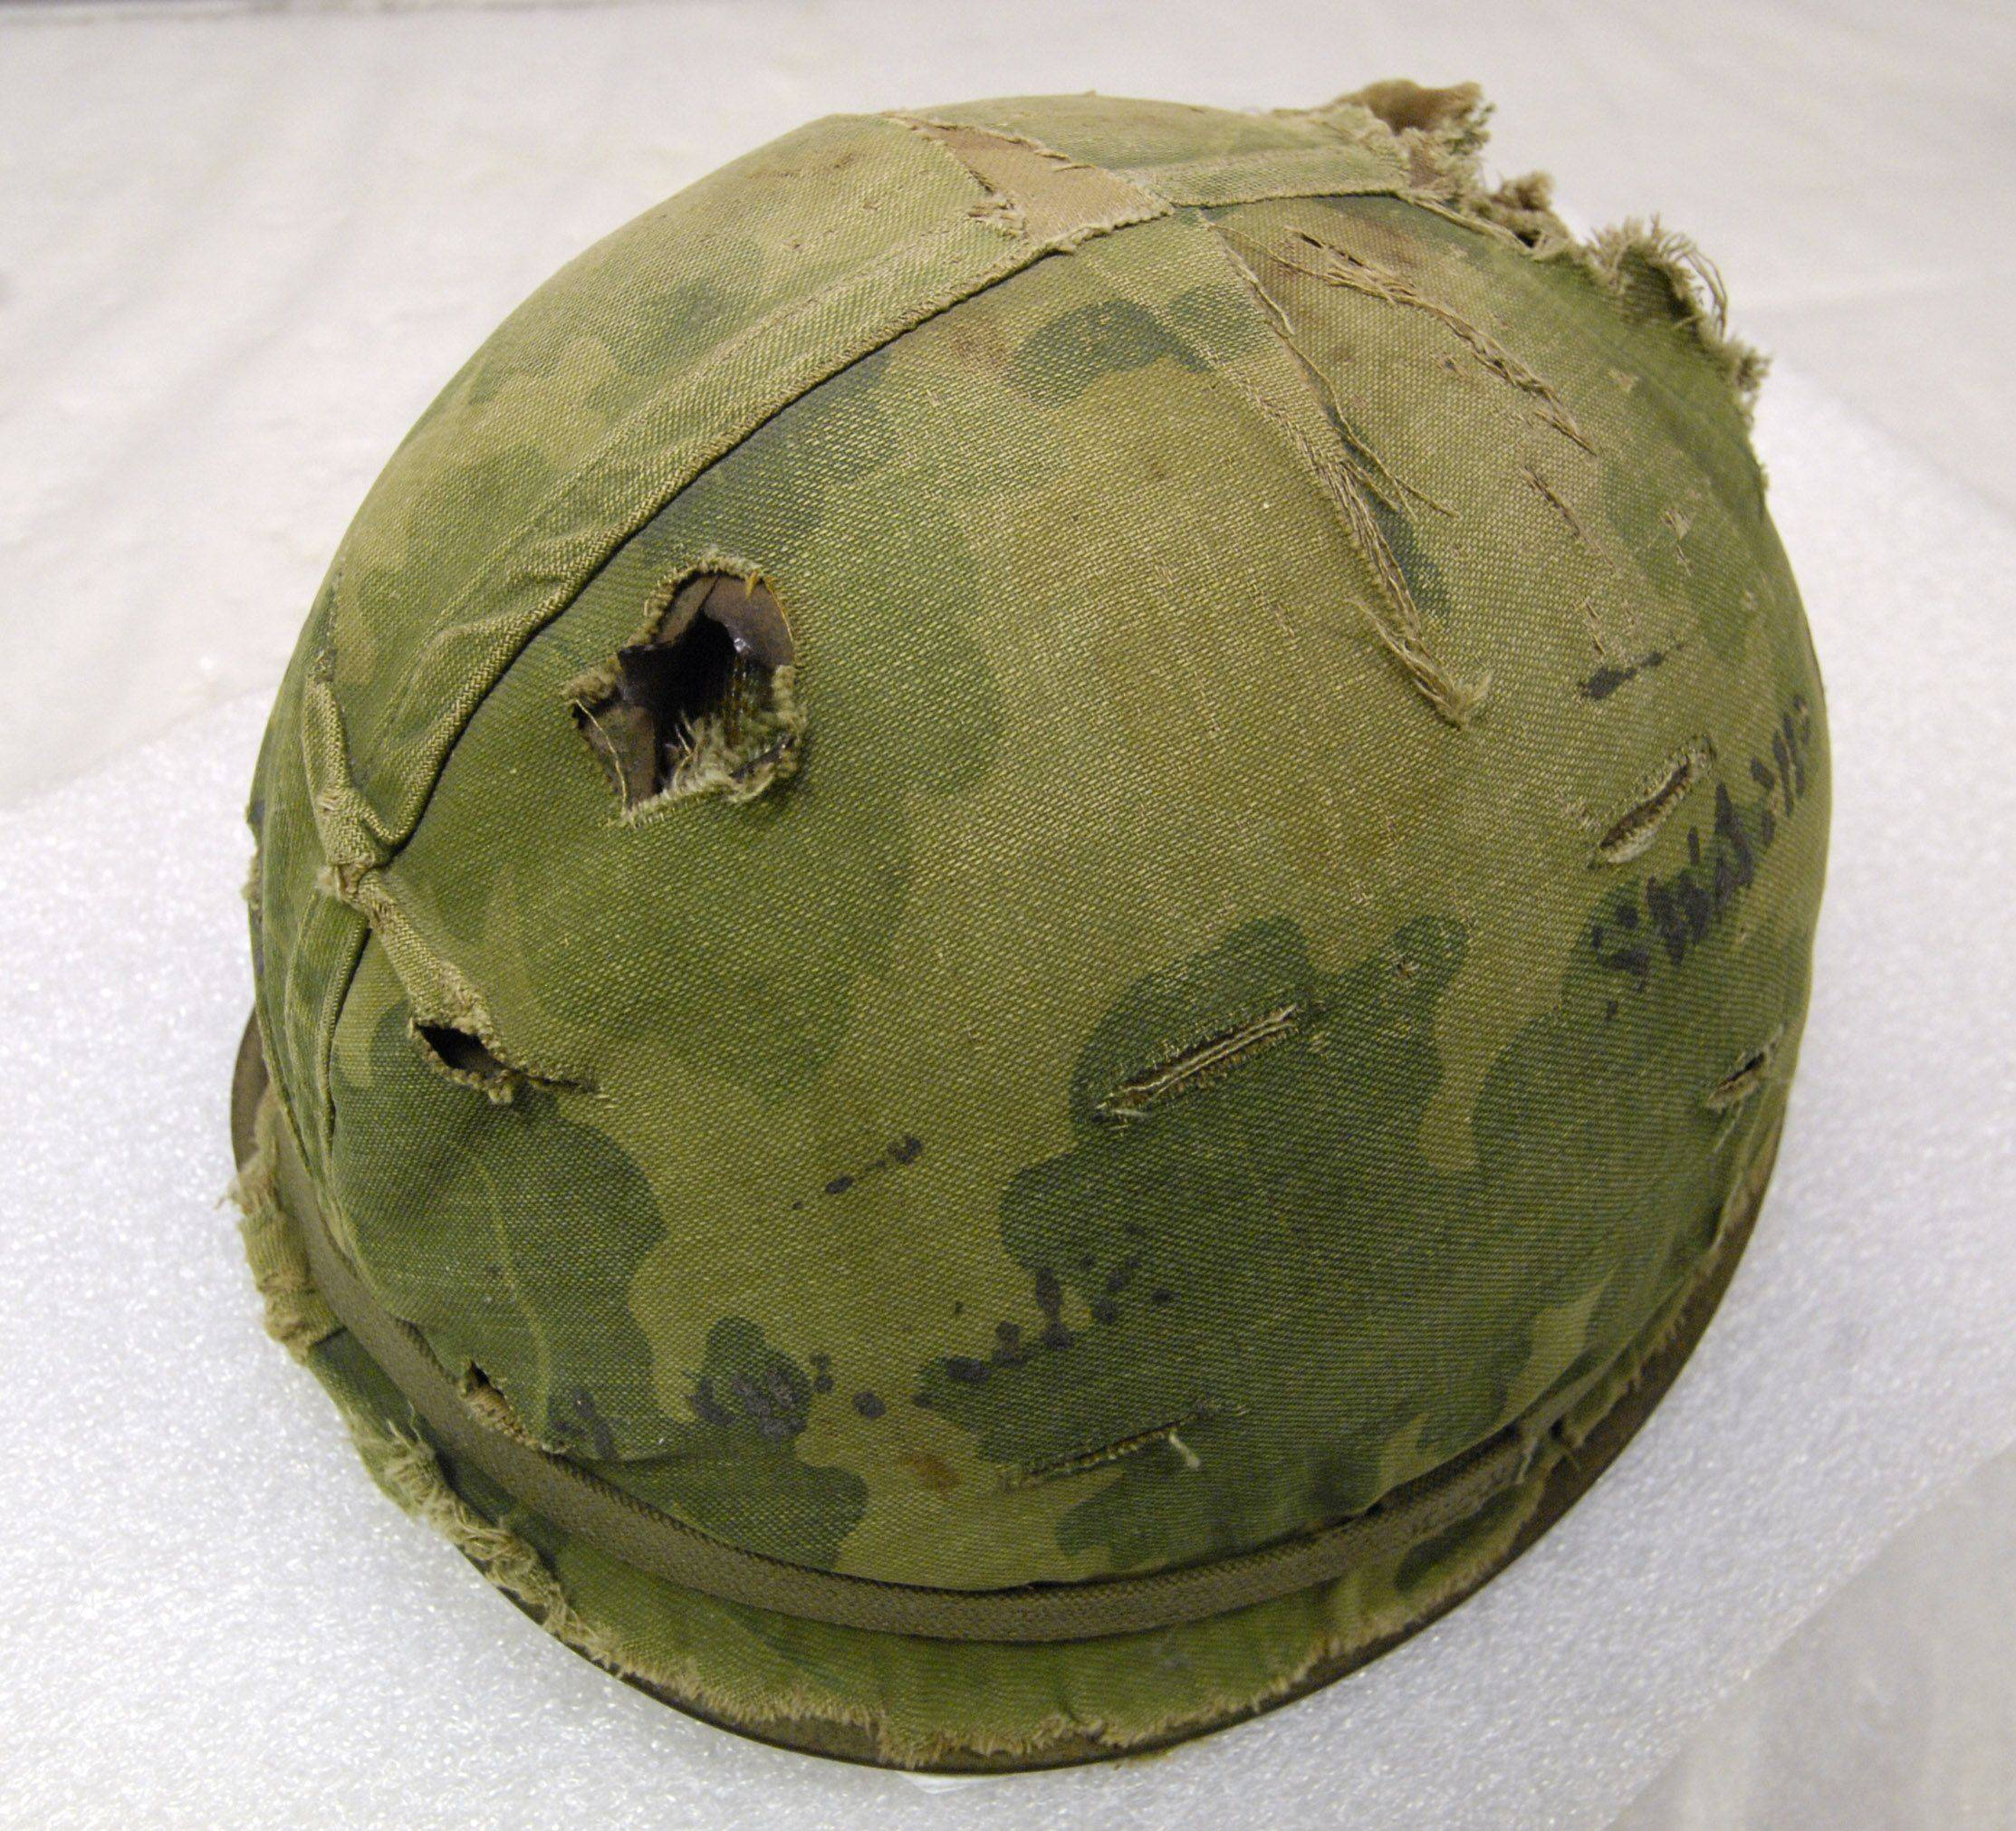 The 1st Division Museum has such items as this helmet with a bullet hole through the top that was worn and donated to the museum by Ronald Campsey, 1st Battalion, 19th Infantry Regiment, 1st Division, Vietnam 1968. Campsey was uninjured by the gun shot and did not know his helmet was shot until he returned to base.